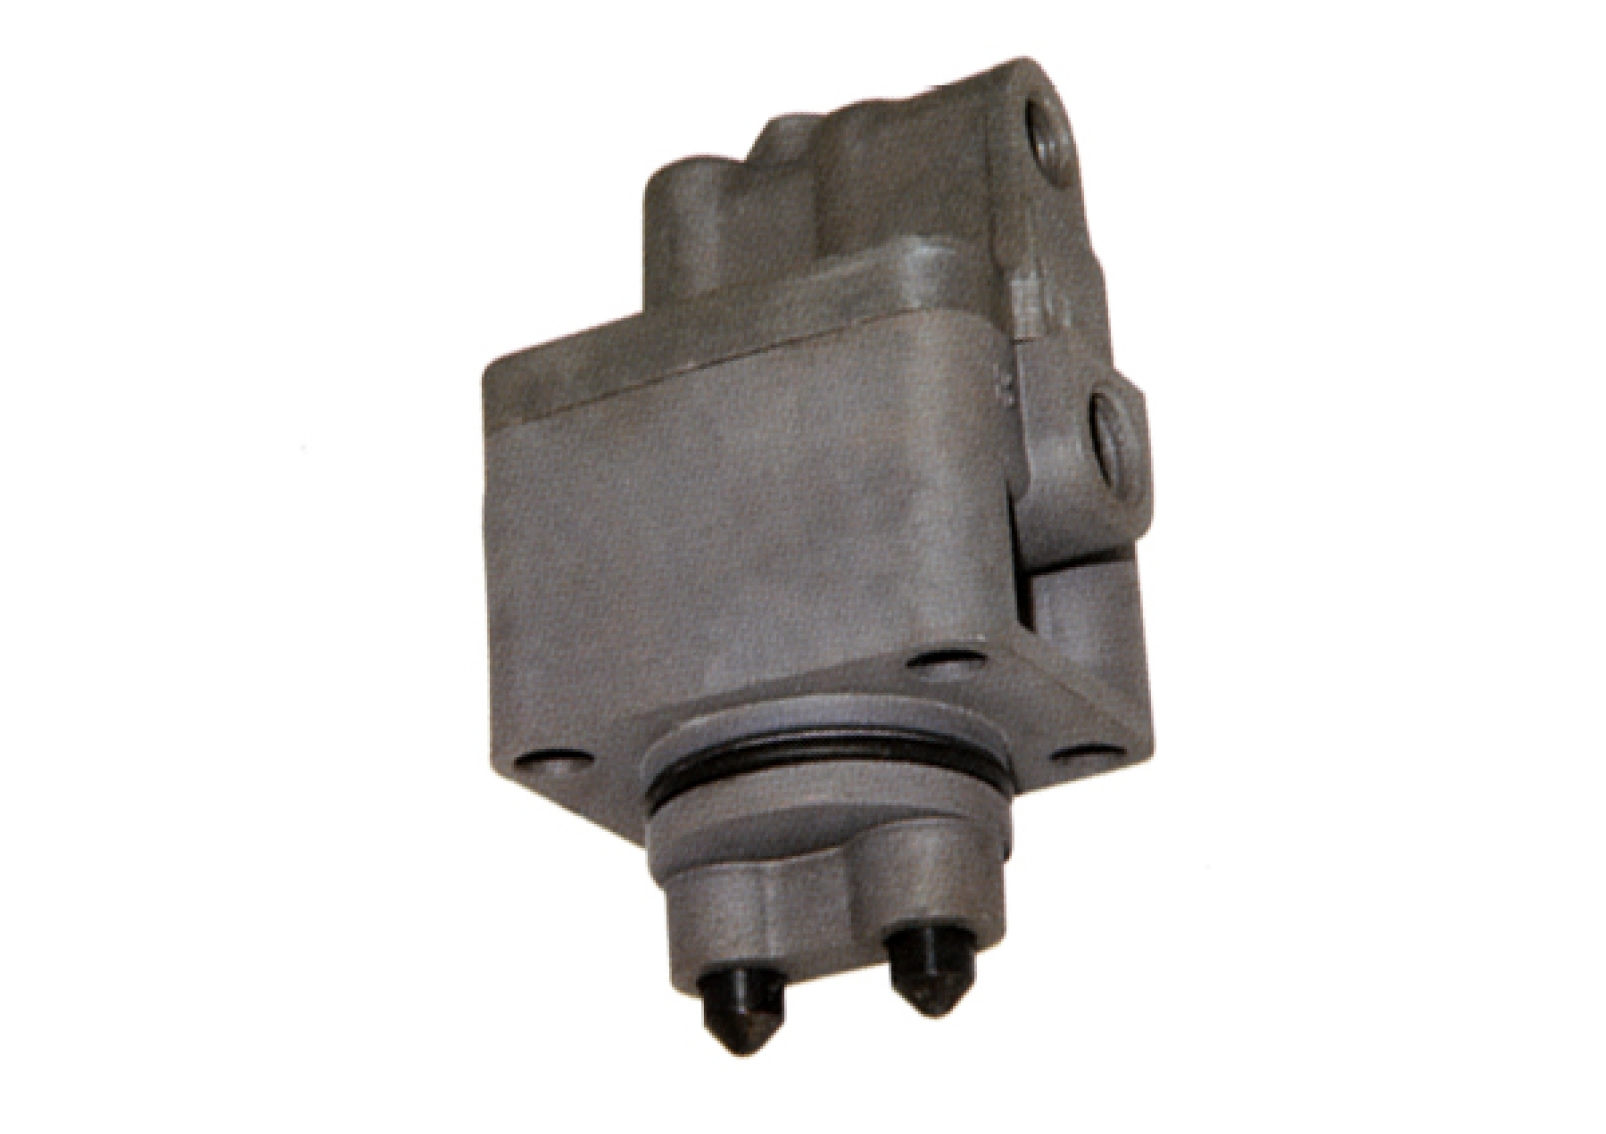 Gearbox Valf Unit for Man Daf Iveco, SV3368, 692183, 194549, 623391, 93159298, 81 52170 6064, 81 52170 6128